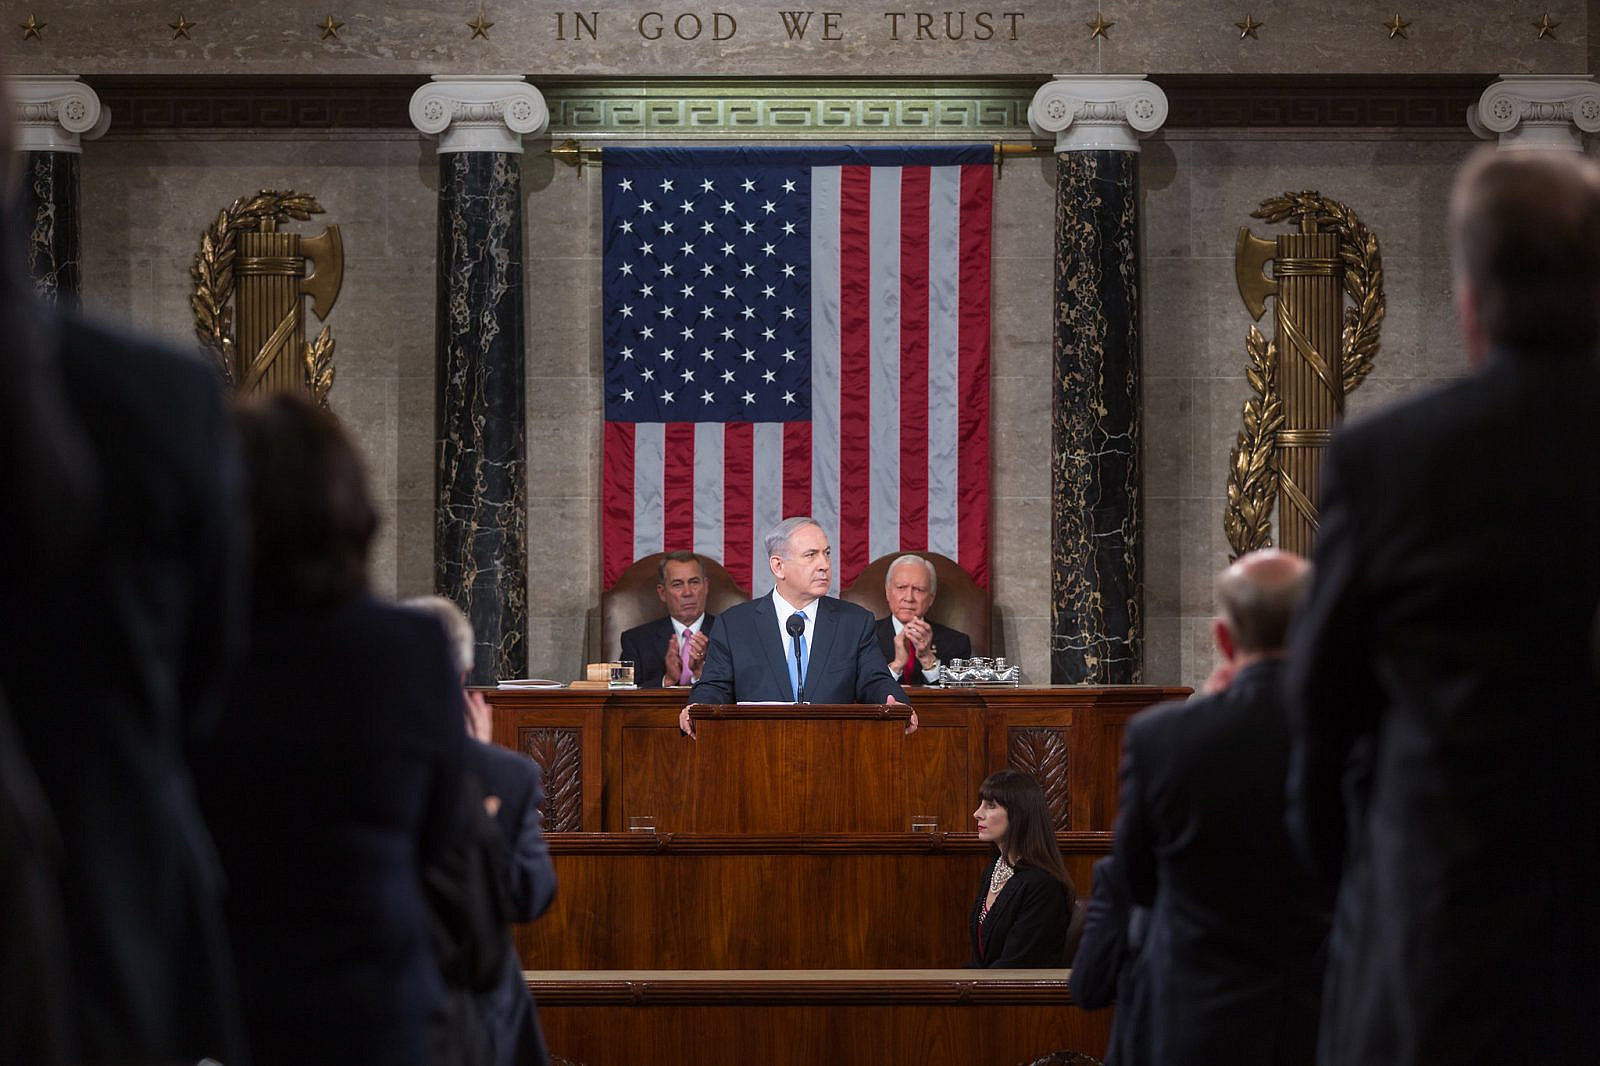 Israeli Prime Minister Benjamin Netanyahu speaks at a joint Session of the U.S. Congress on March 3, 2015. (Official Photo by Caleb Smith)